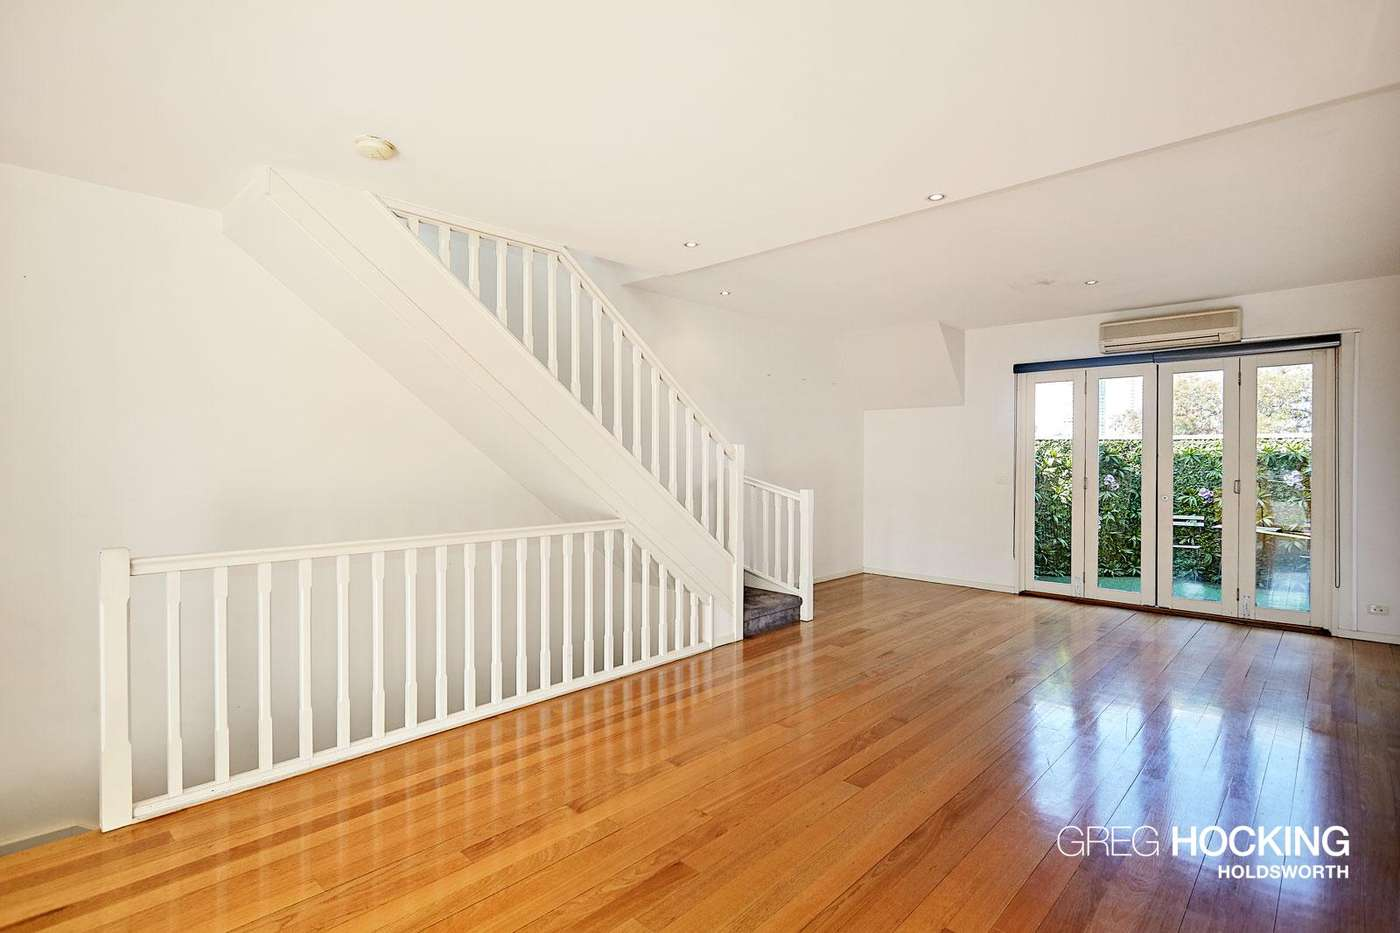 Main view of Homely house listing, 5/46 Dow Street, South Melbourne, VIC 3205